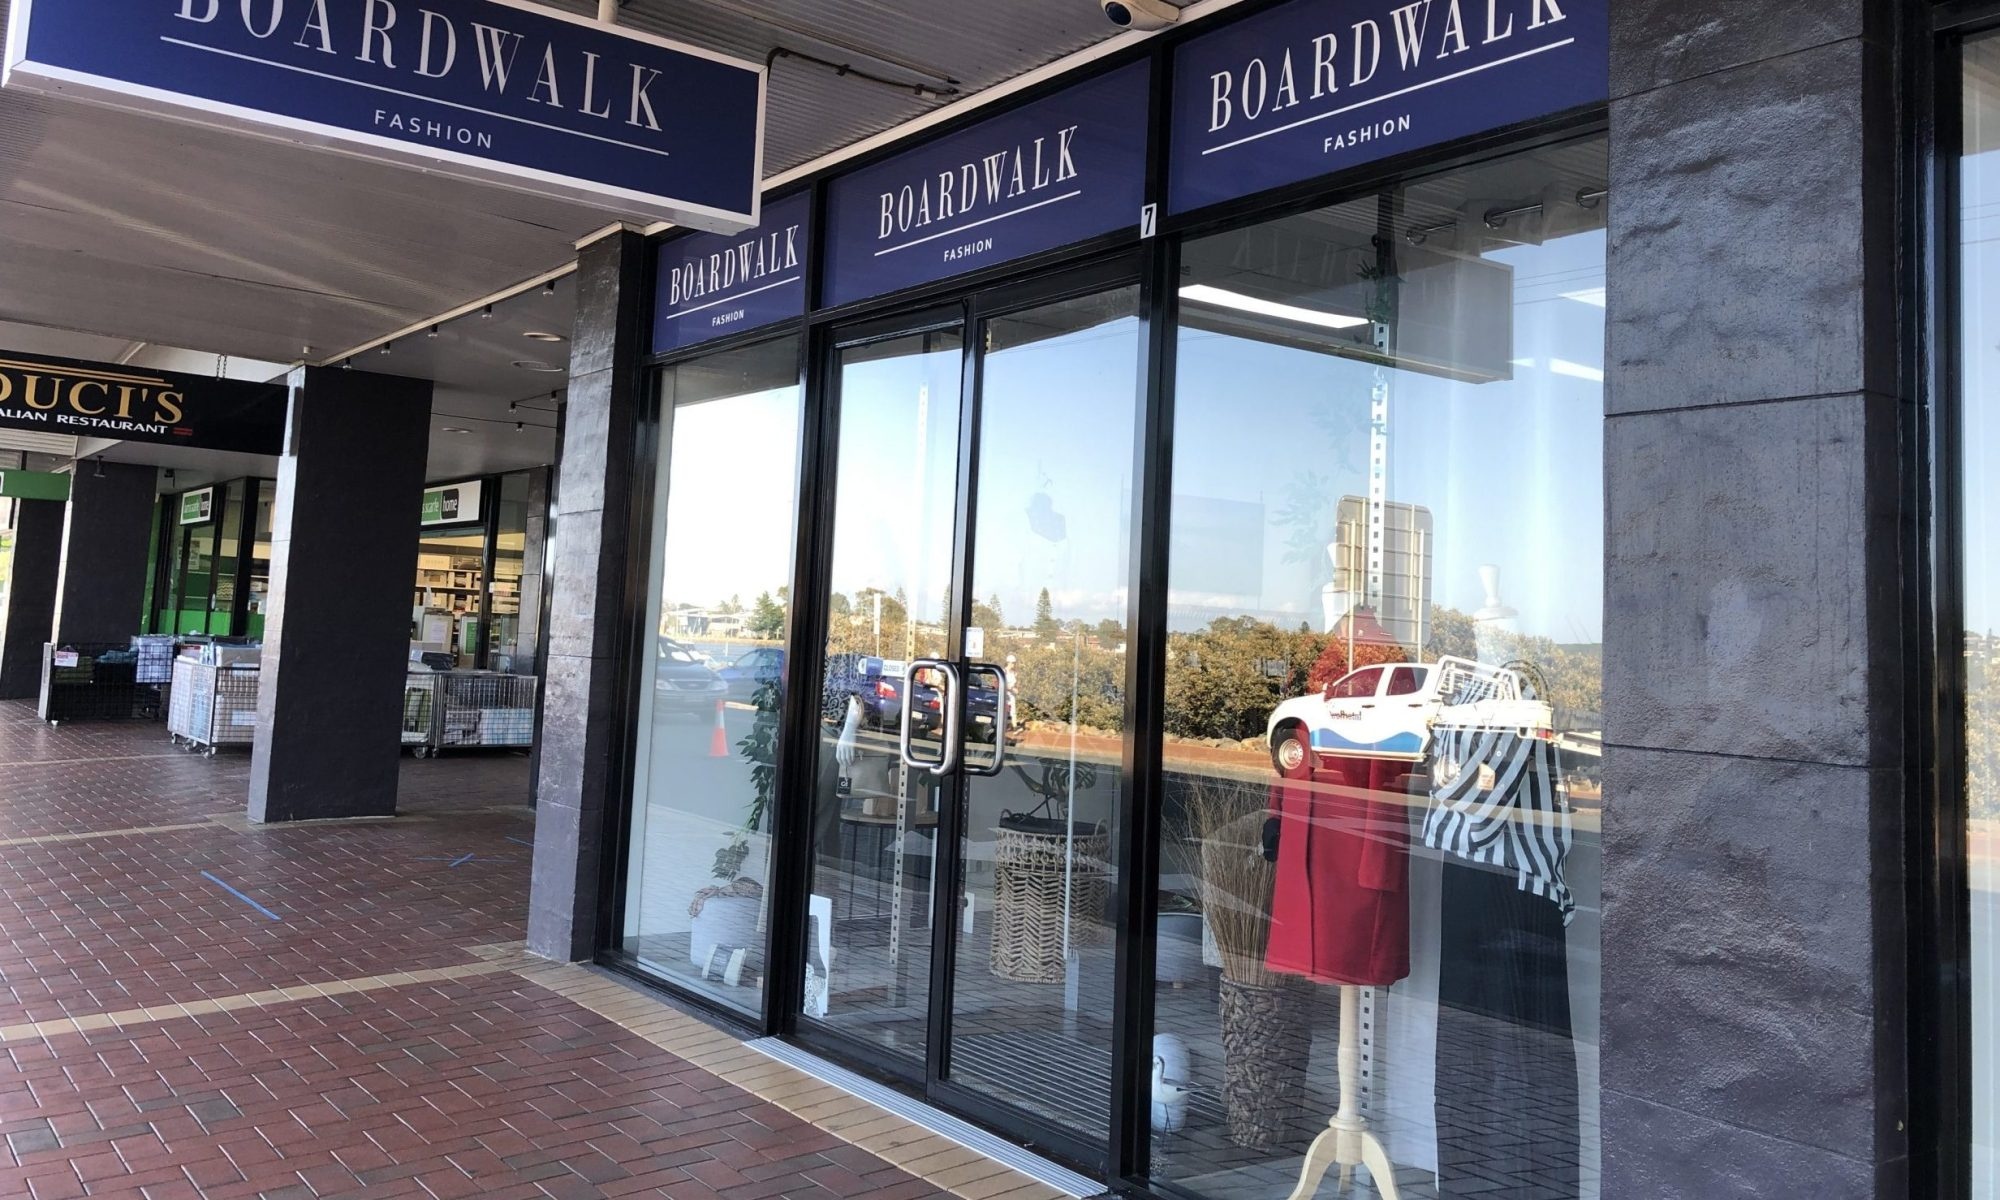 Boardwalk Fashion, the destination boutique for quality clothing.